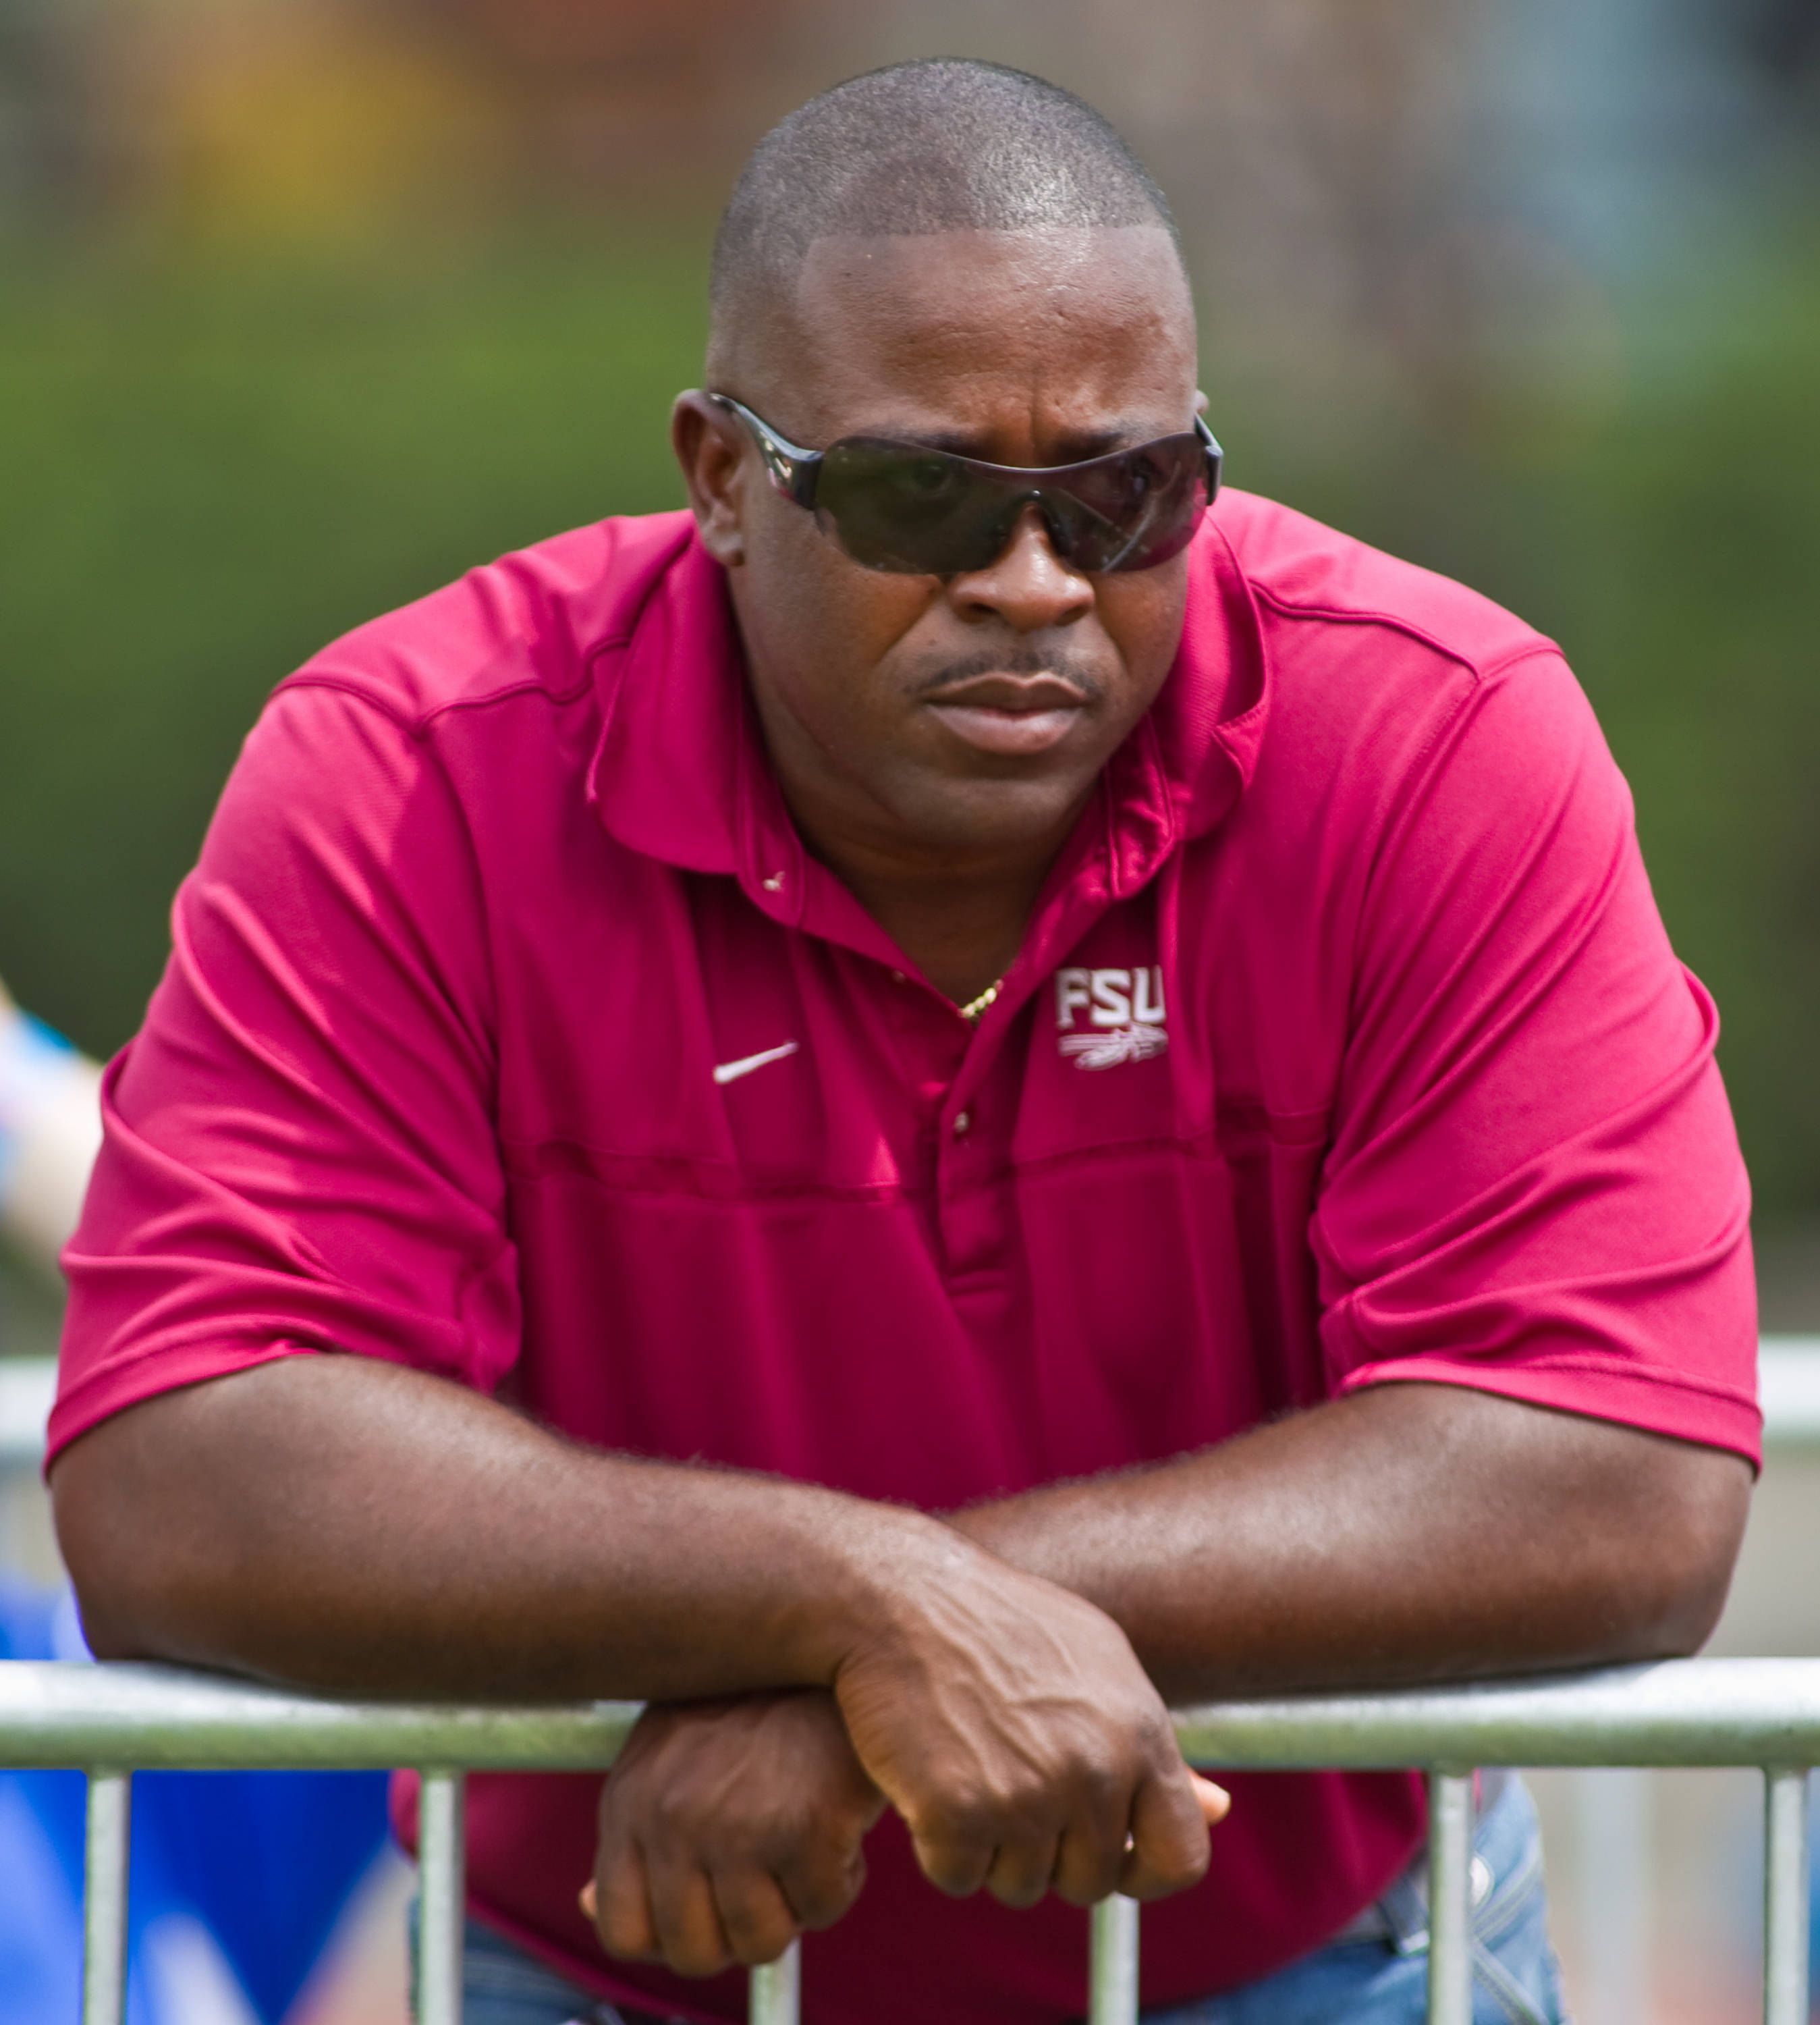 Florida State associate head coach Harlis Meaders watches over the javelin competition at the 2012 FSU Relays.